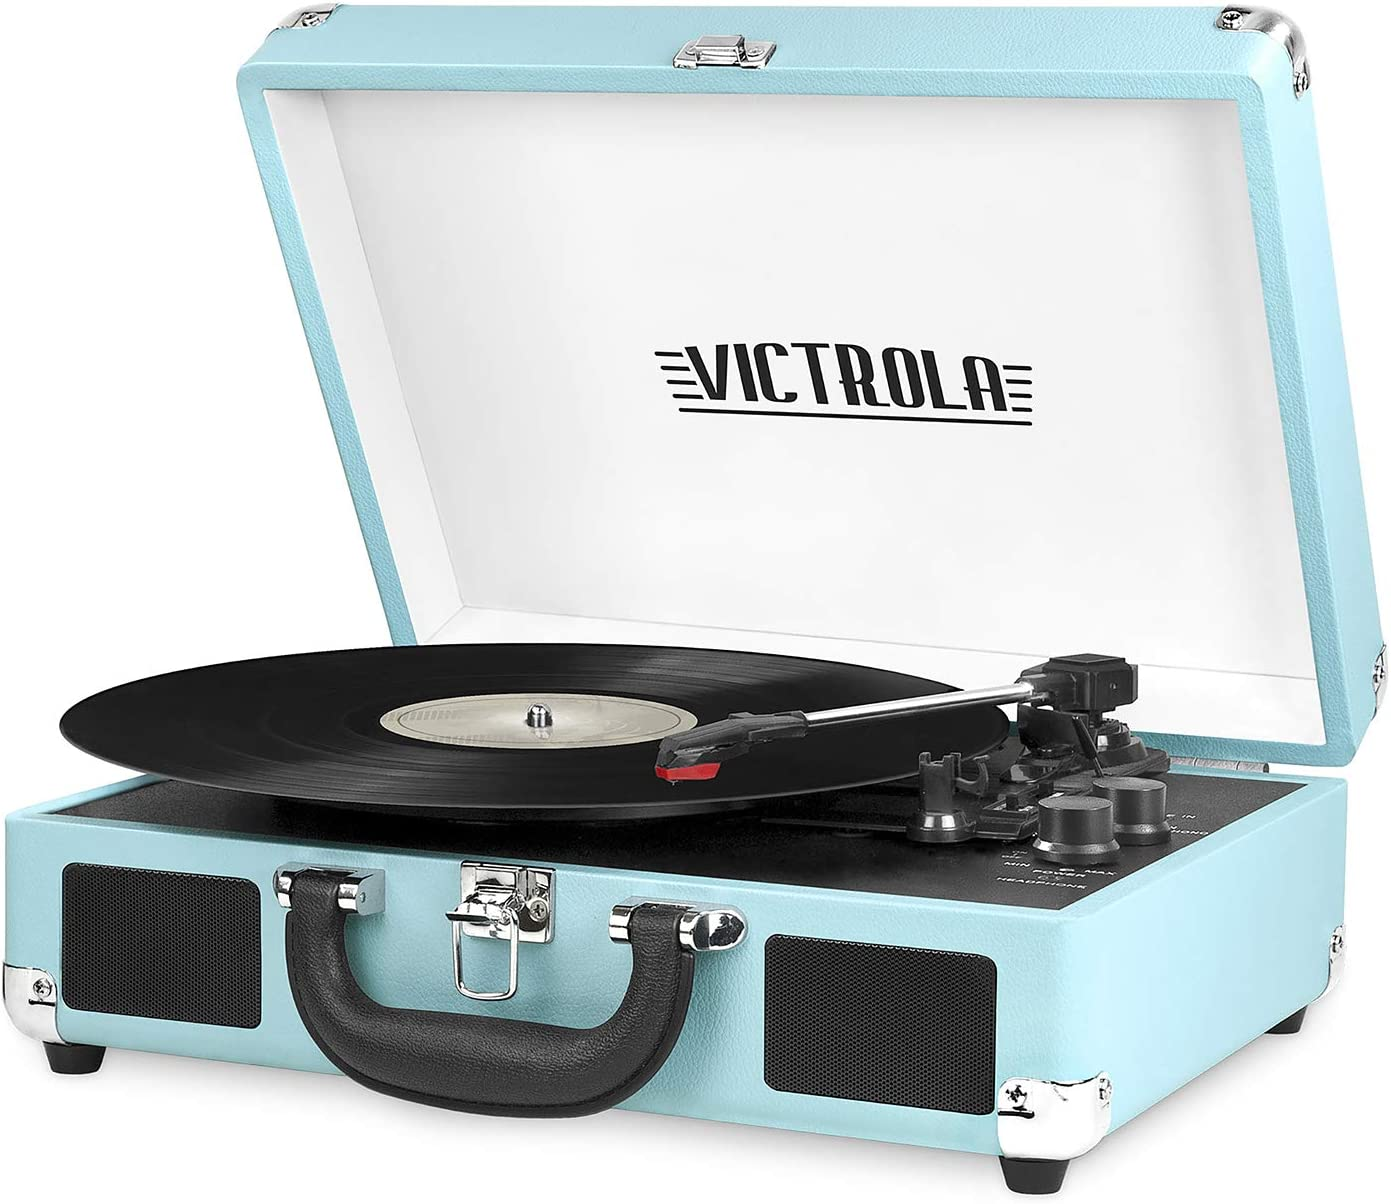 Victrola bluetooth portable record player in light blue color case.